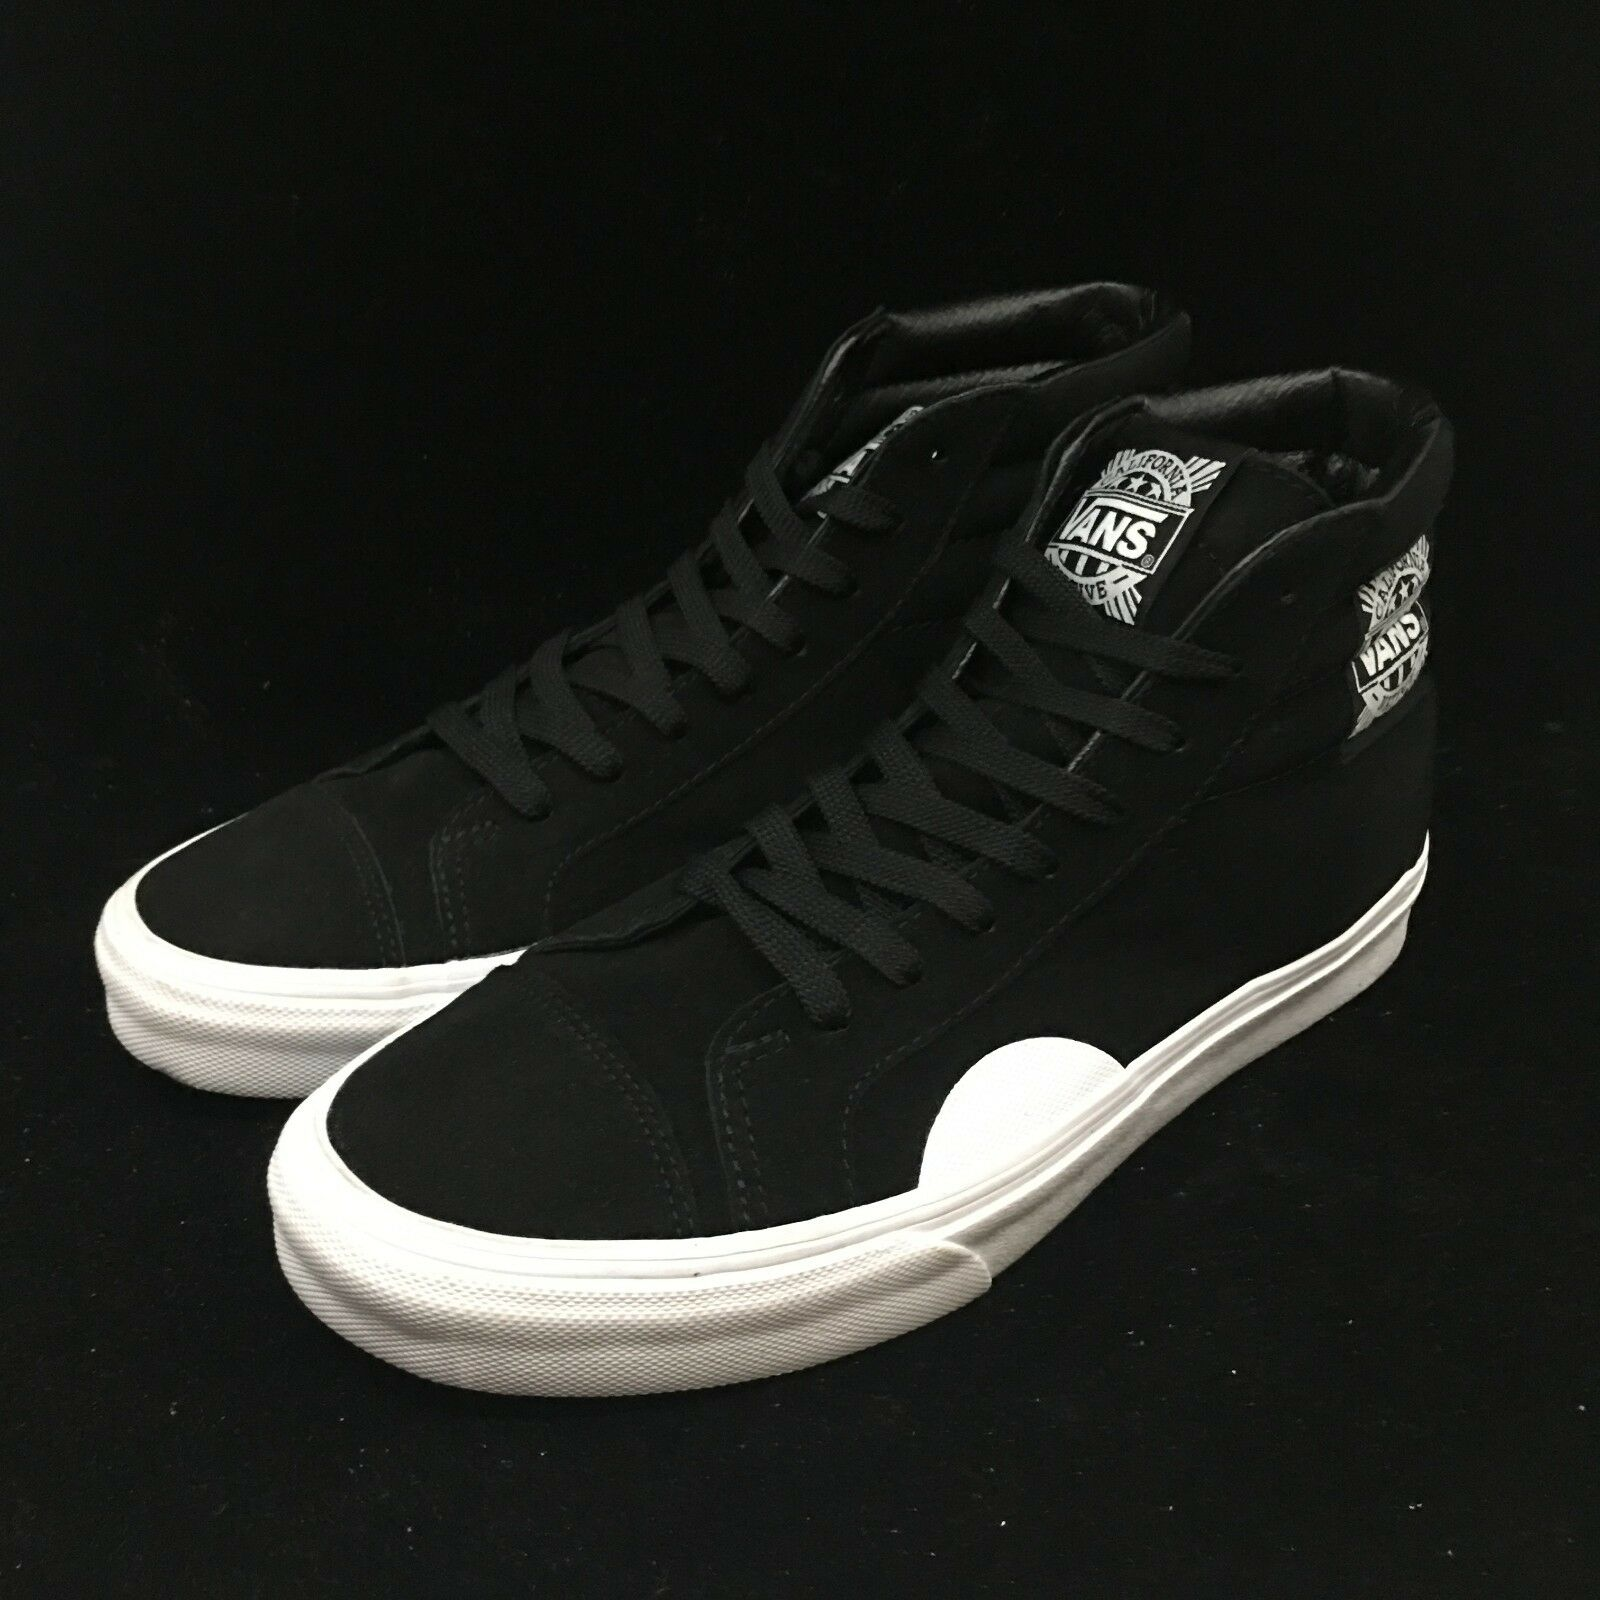 Vans Style 238 Native Black White High Top Suede VN0A3JFIQXP